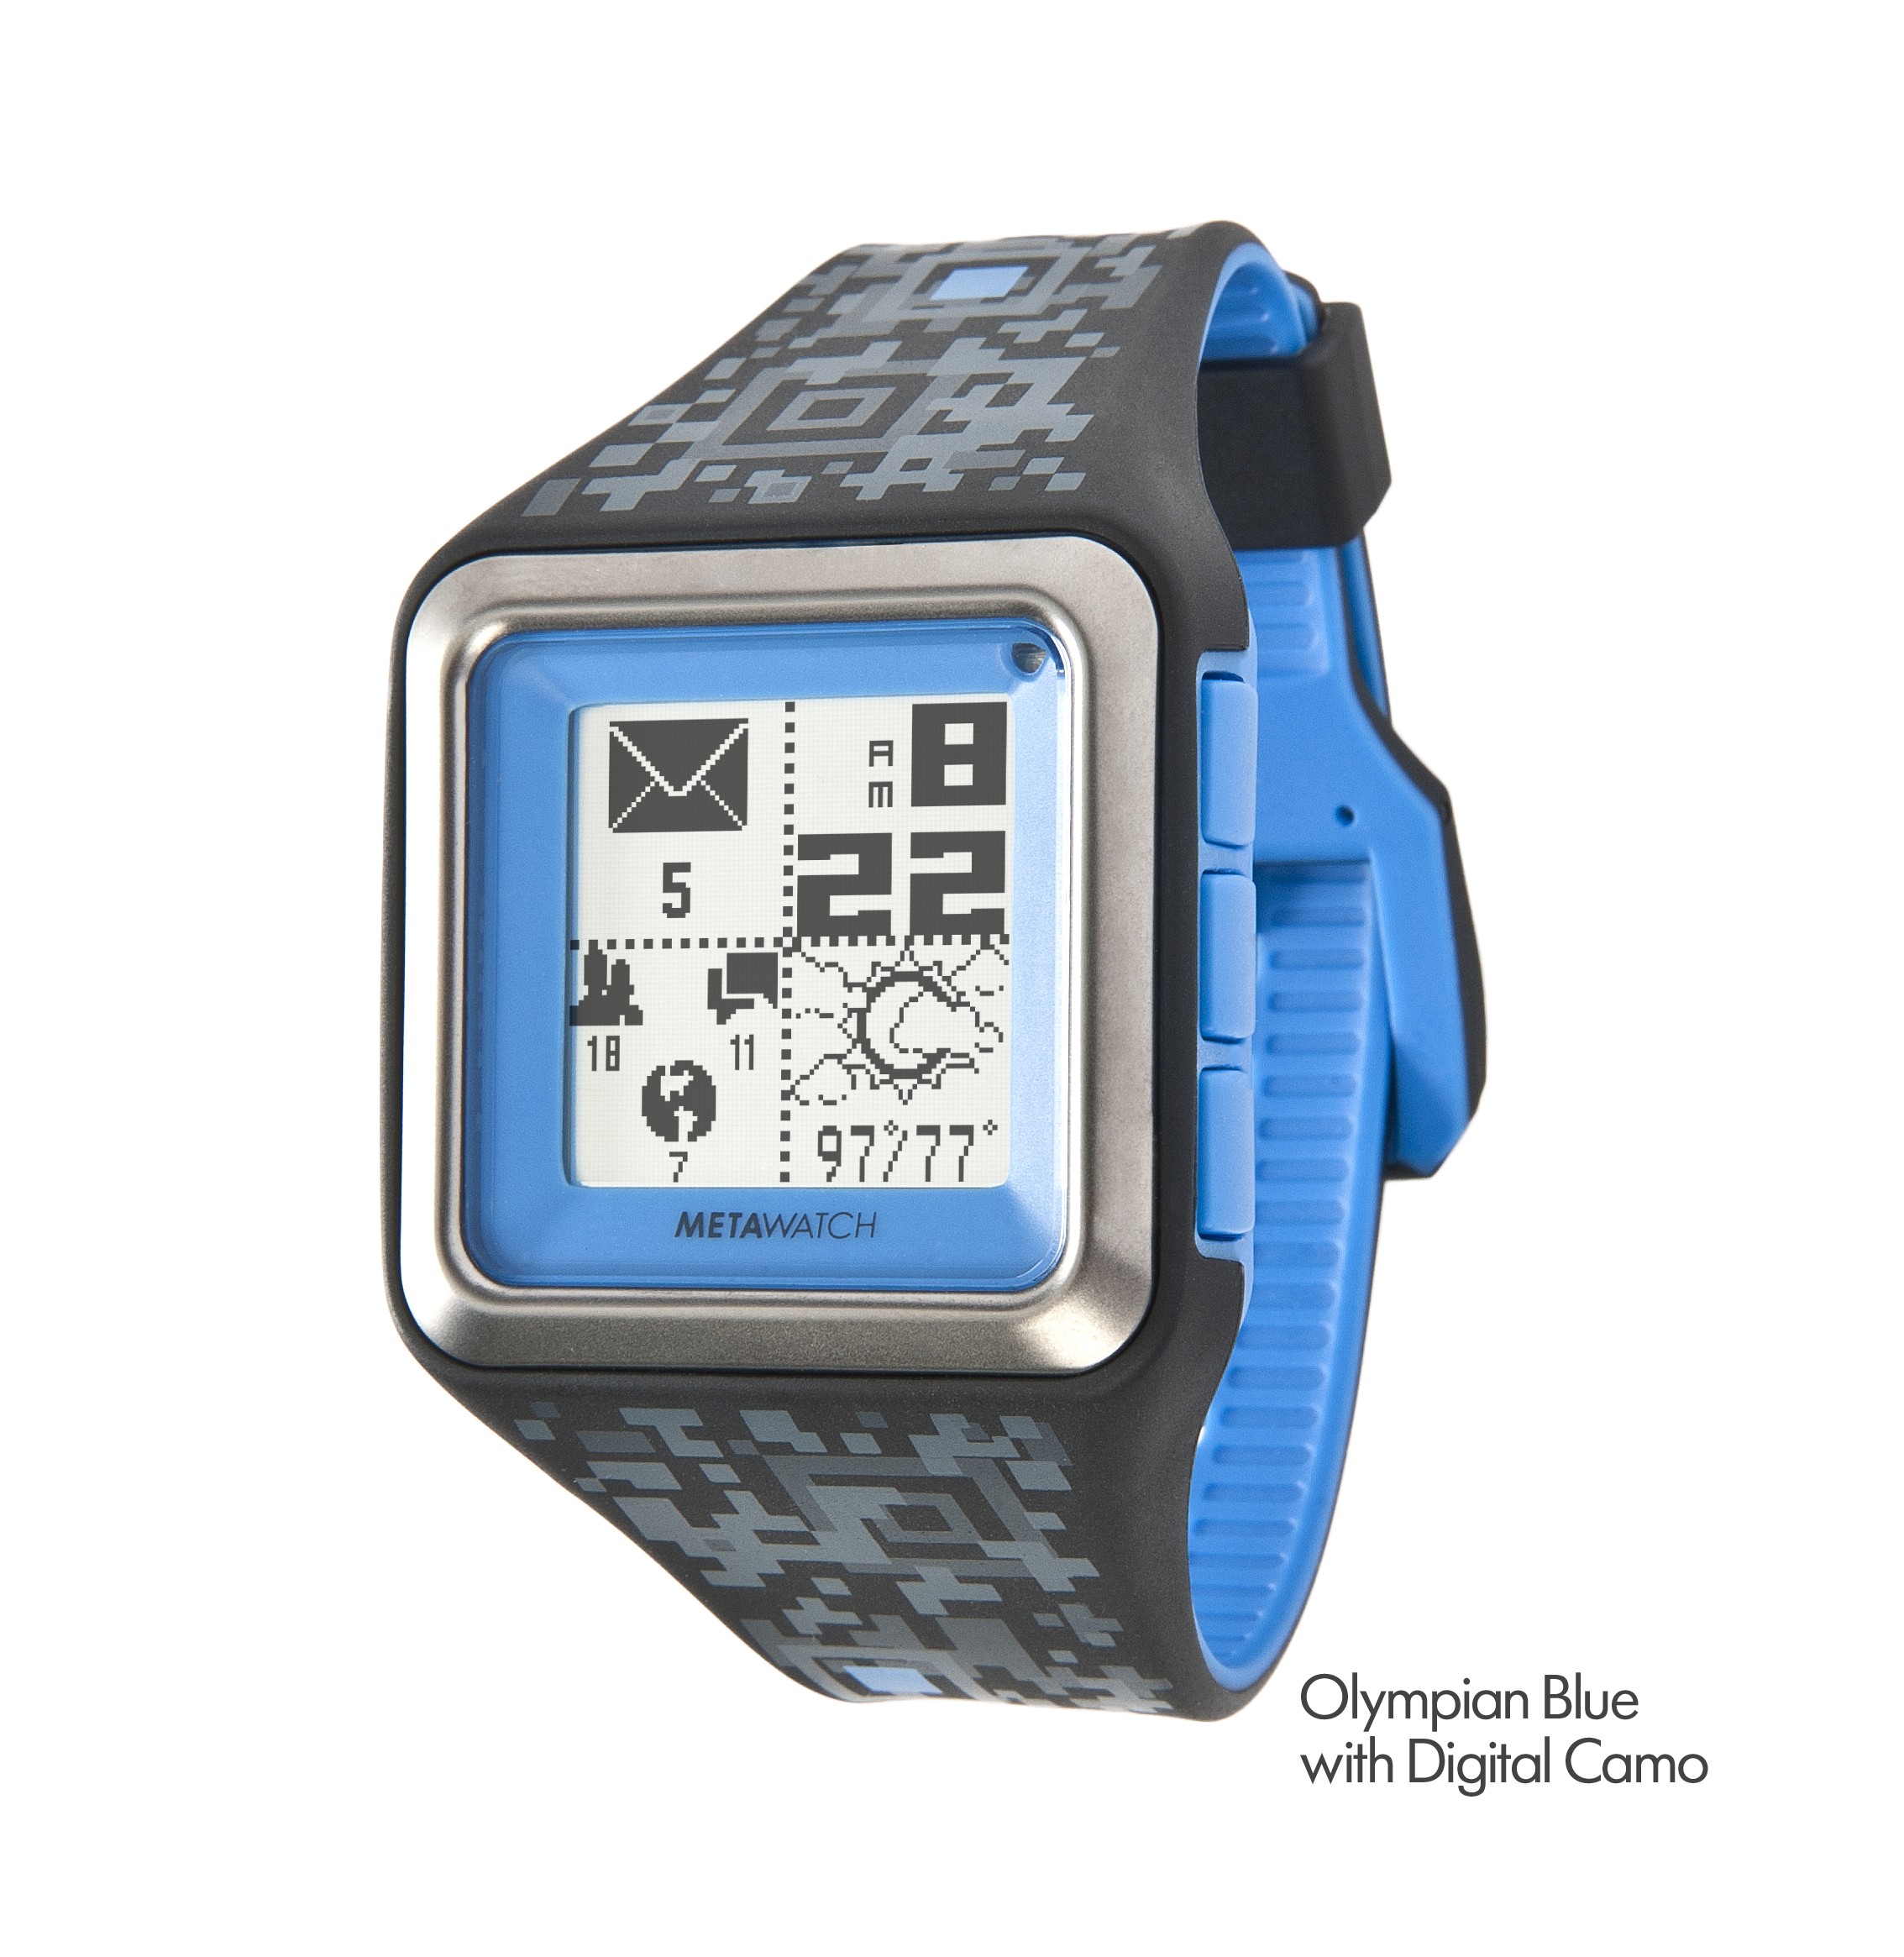 http://itsjustjustin.com/wp-content/uploads/2013/05/MetaWatch-Blue-Camo.jpg